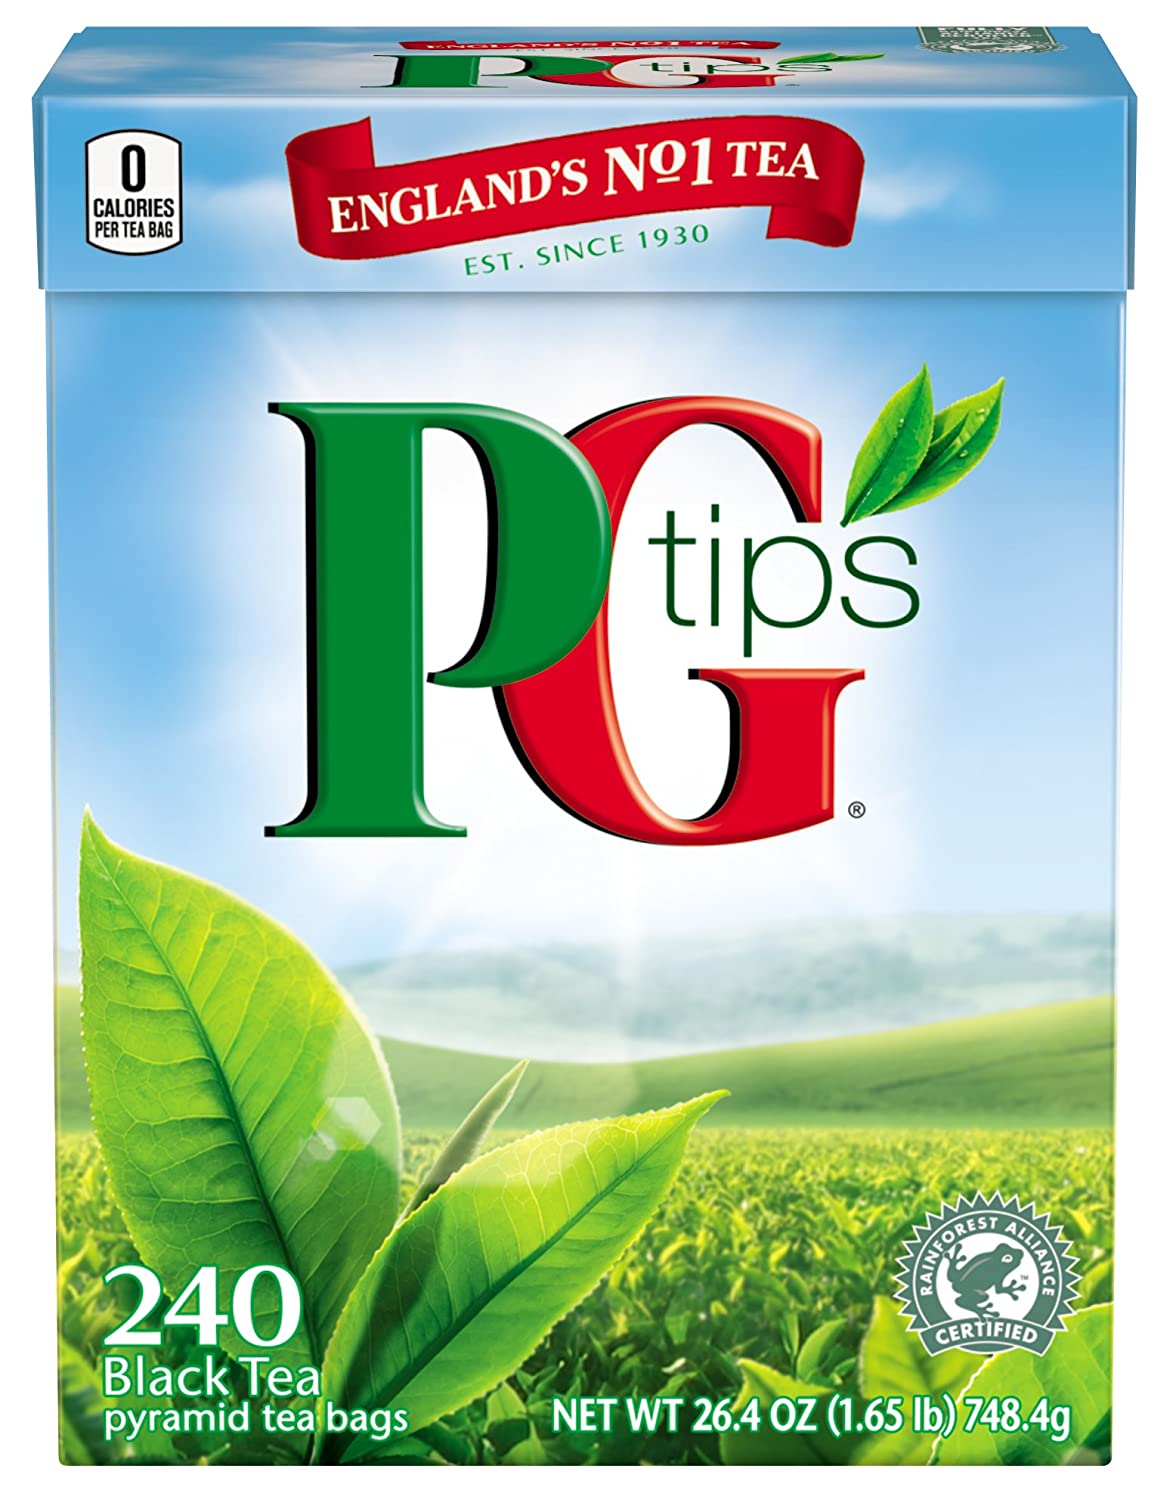 p g tips Pg tips is launching a new tea bag made from 100 per cent biodegradable plant-based materials, replacing its old design that included polypropylene plastic.